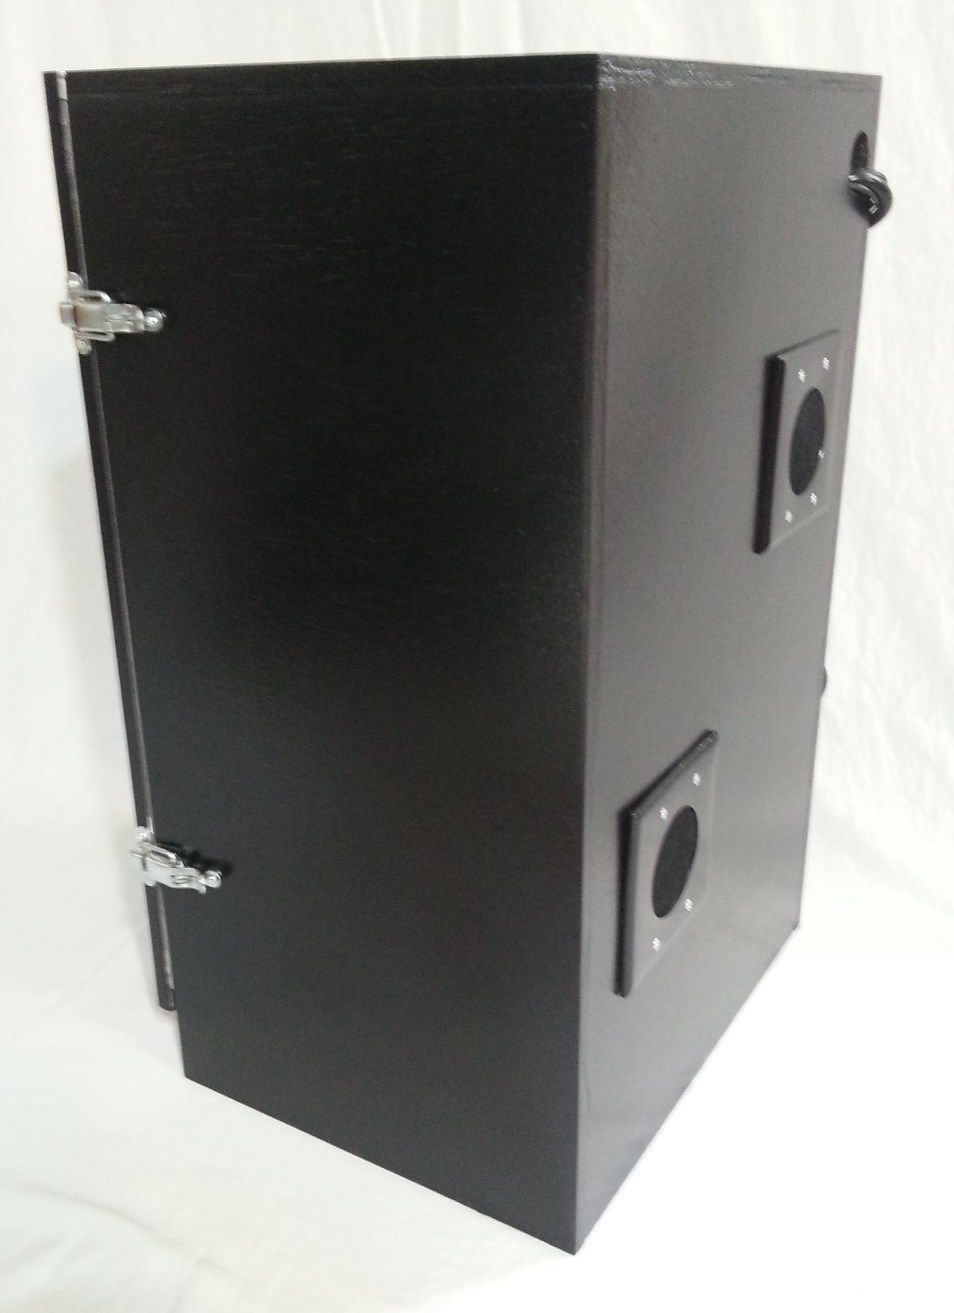 2 Ft Tall 4 Plant Hydroponic Grow Cabinet System Stealth